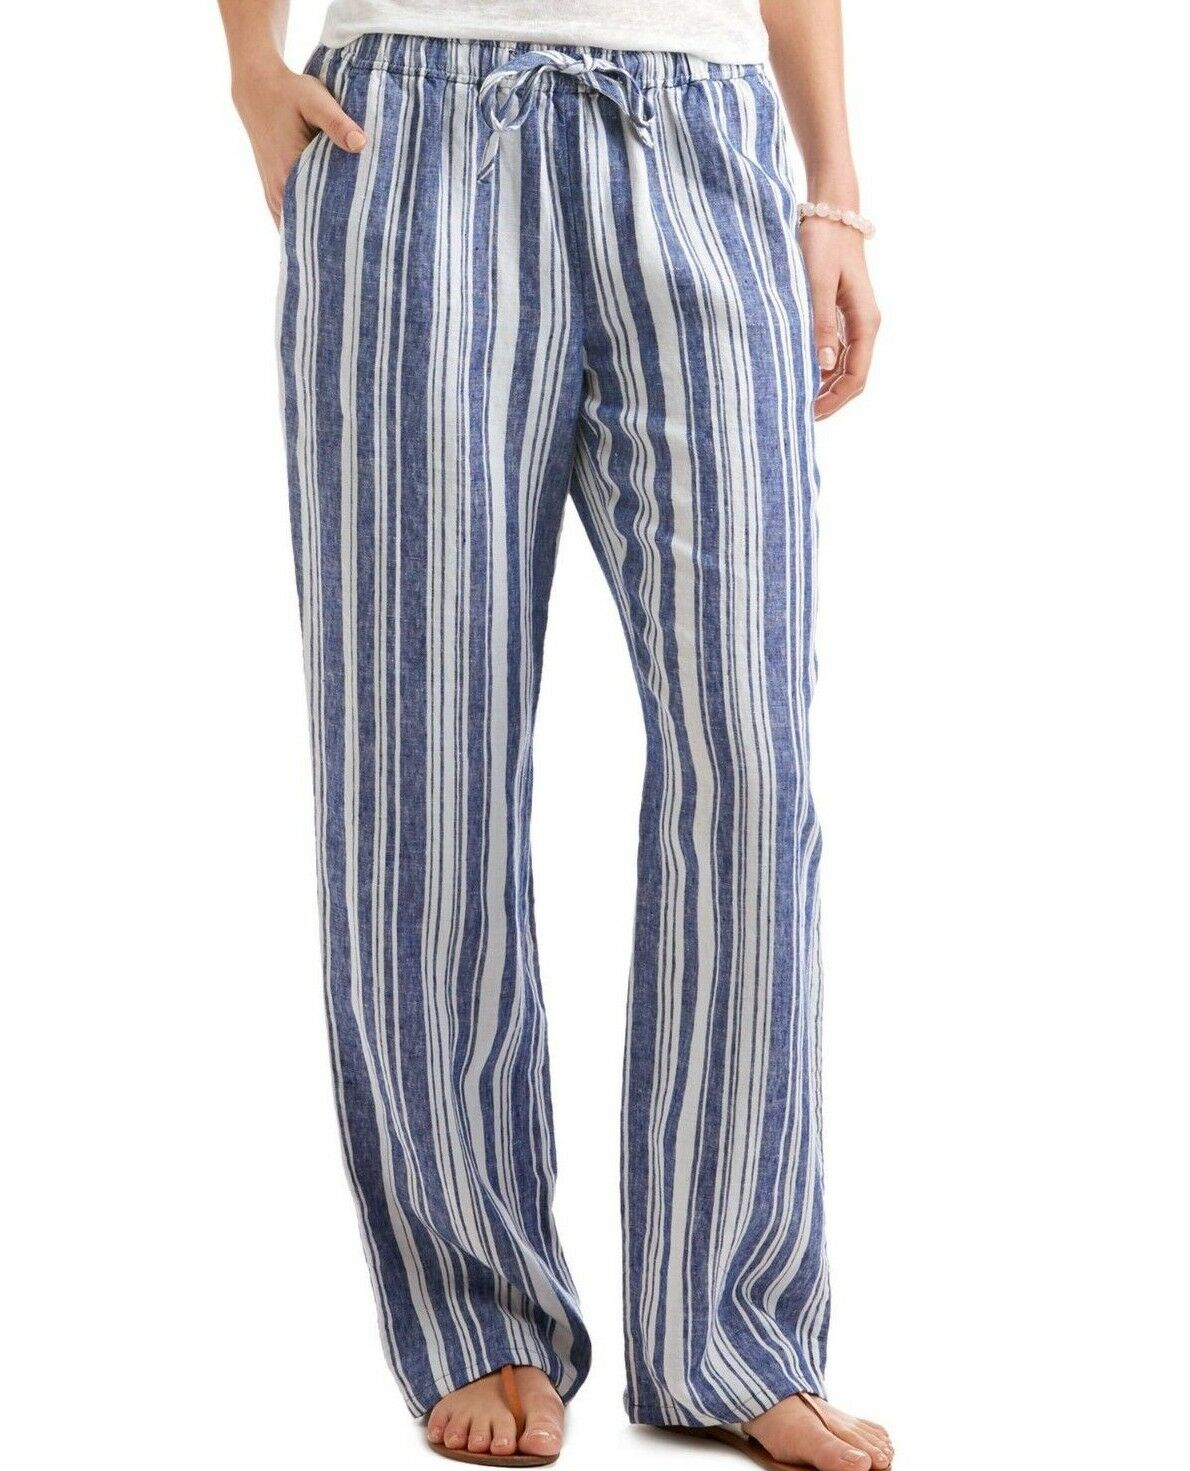 98 NWT VINEYARD VINES SzXS SAILING STRIPE PULL-ON WIDE-LEG LINEN PANTS ROYAL OC